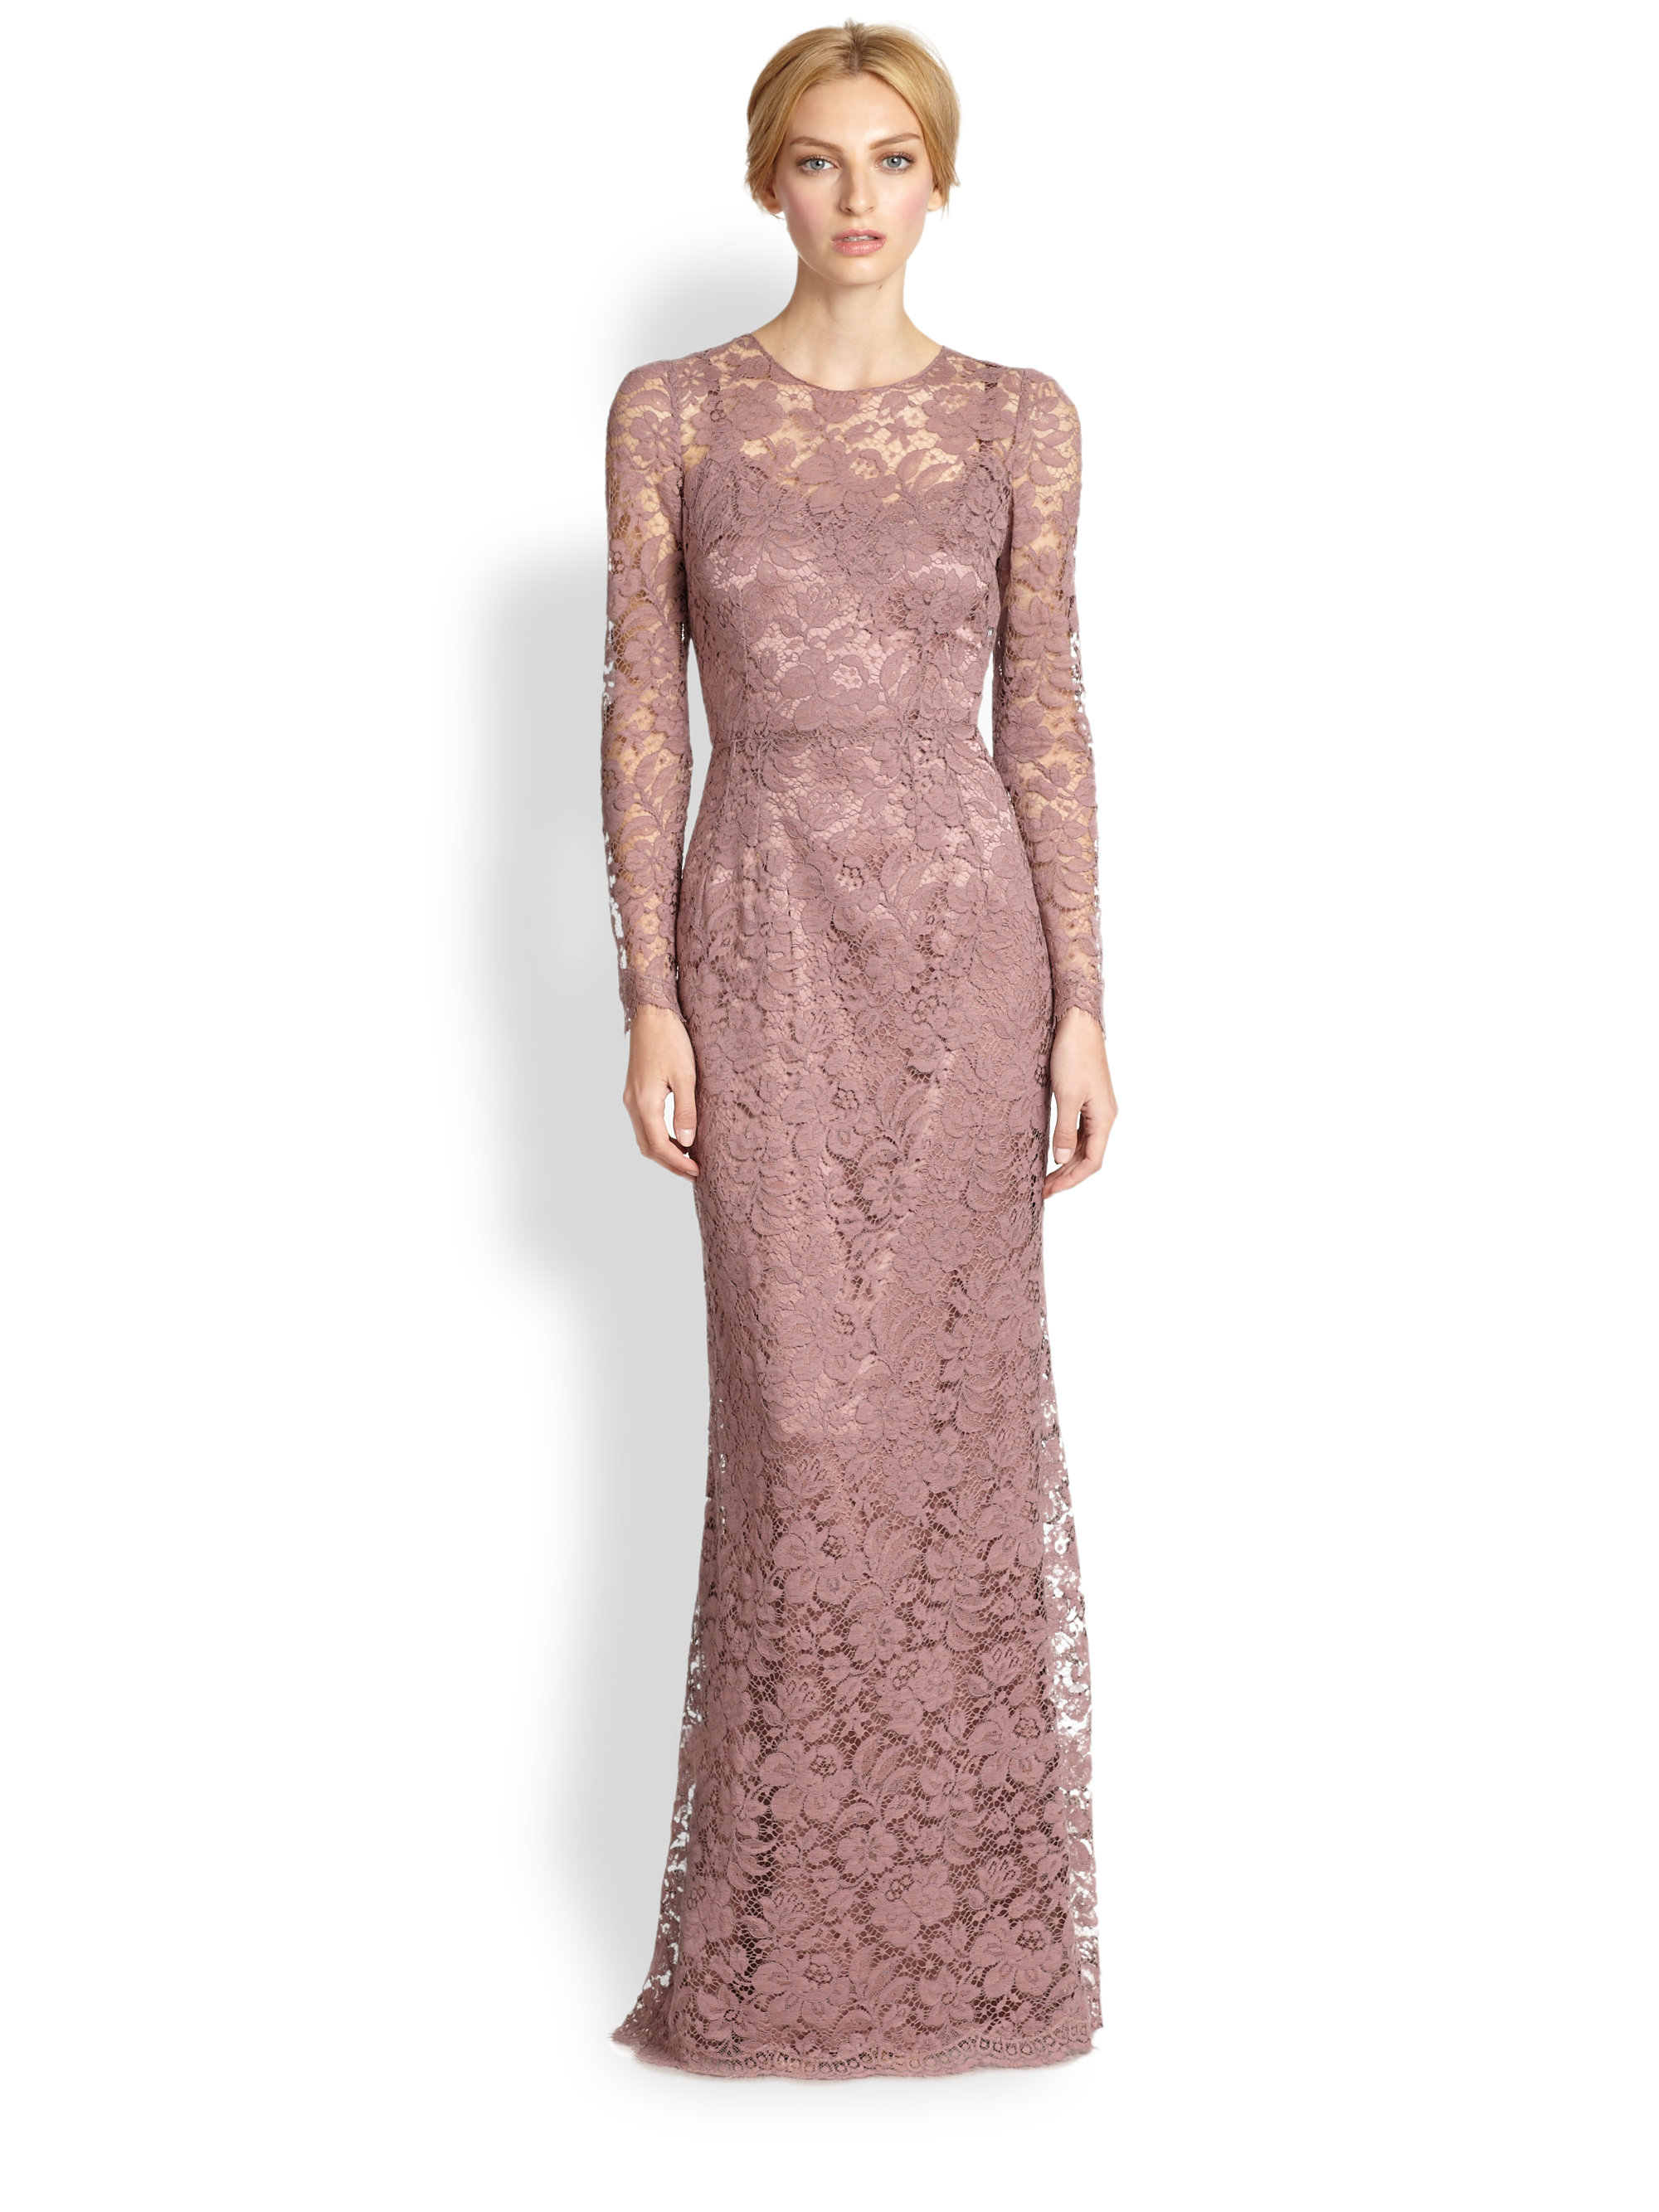 Lyst - Dolce & Gabbana Long Sleeve Lace Gown Rose in Pink